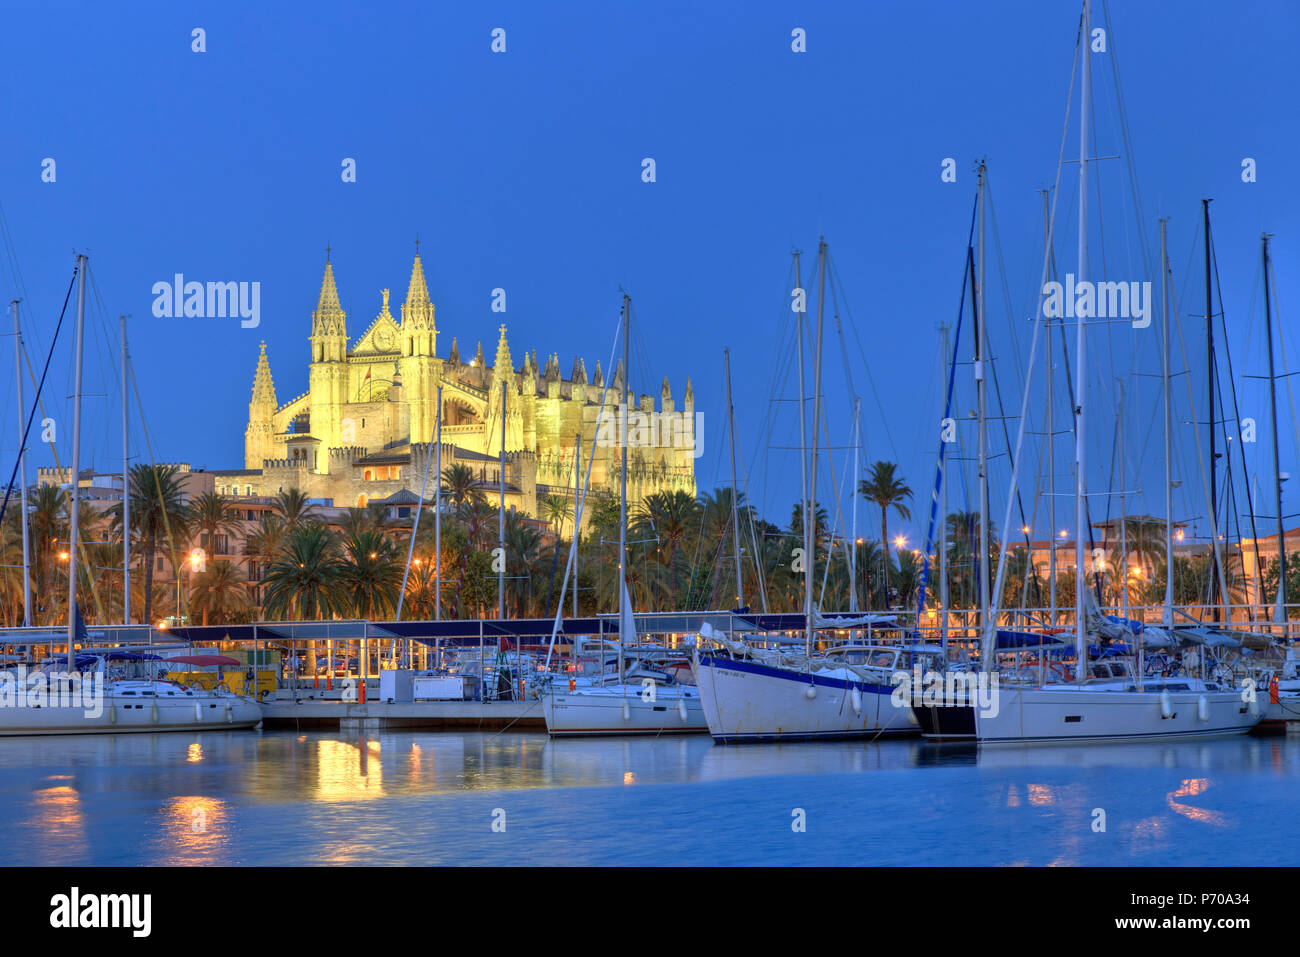 Spain, Balearic Islands, Mallorca, Palma de Mallorca, Cathedral - Stock Image